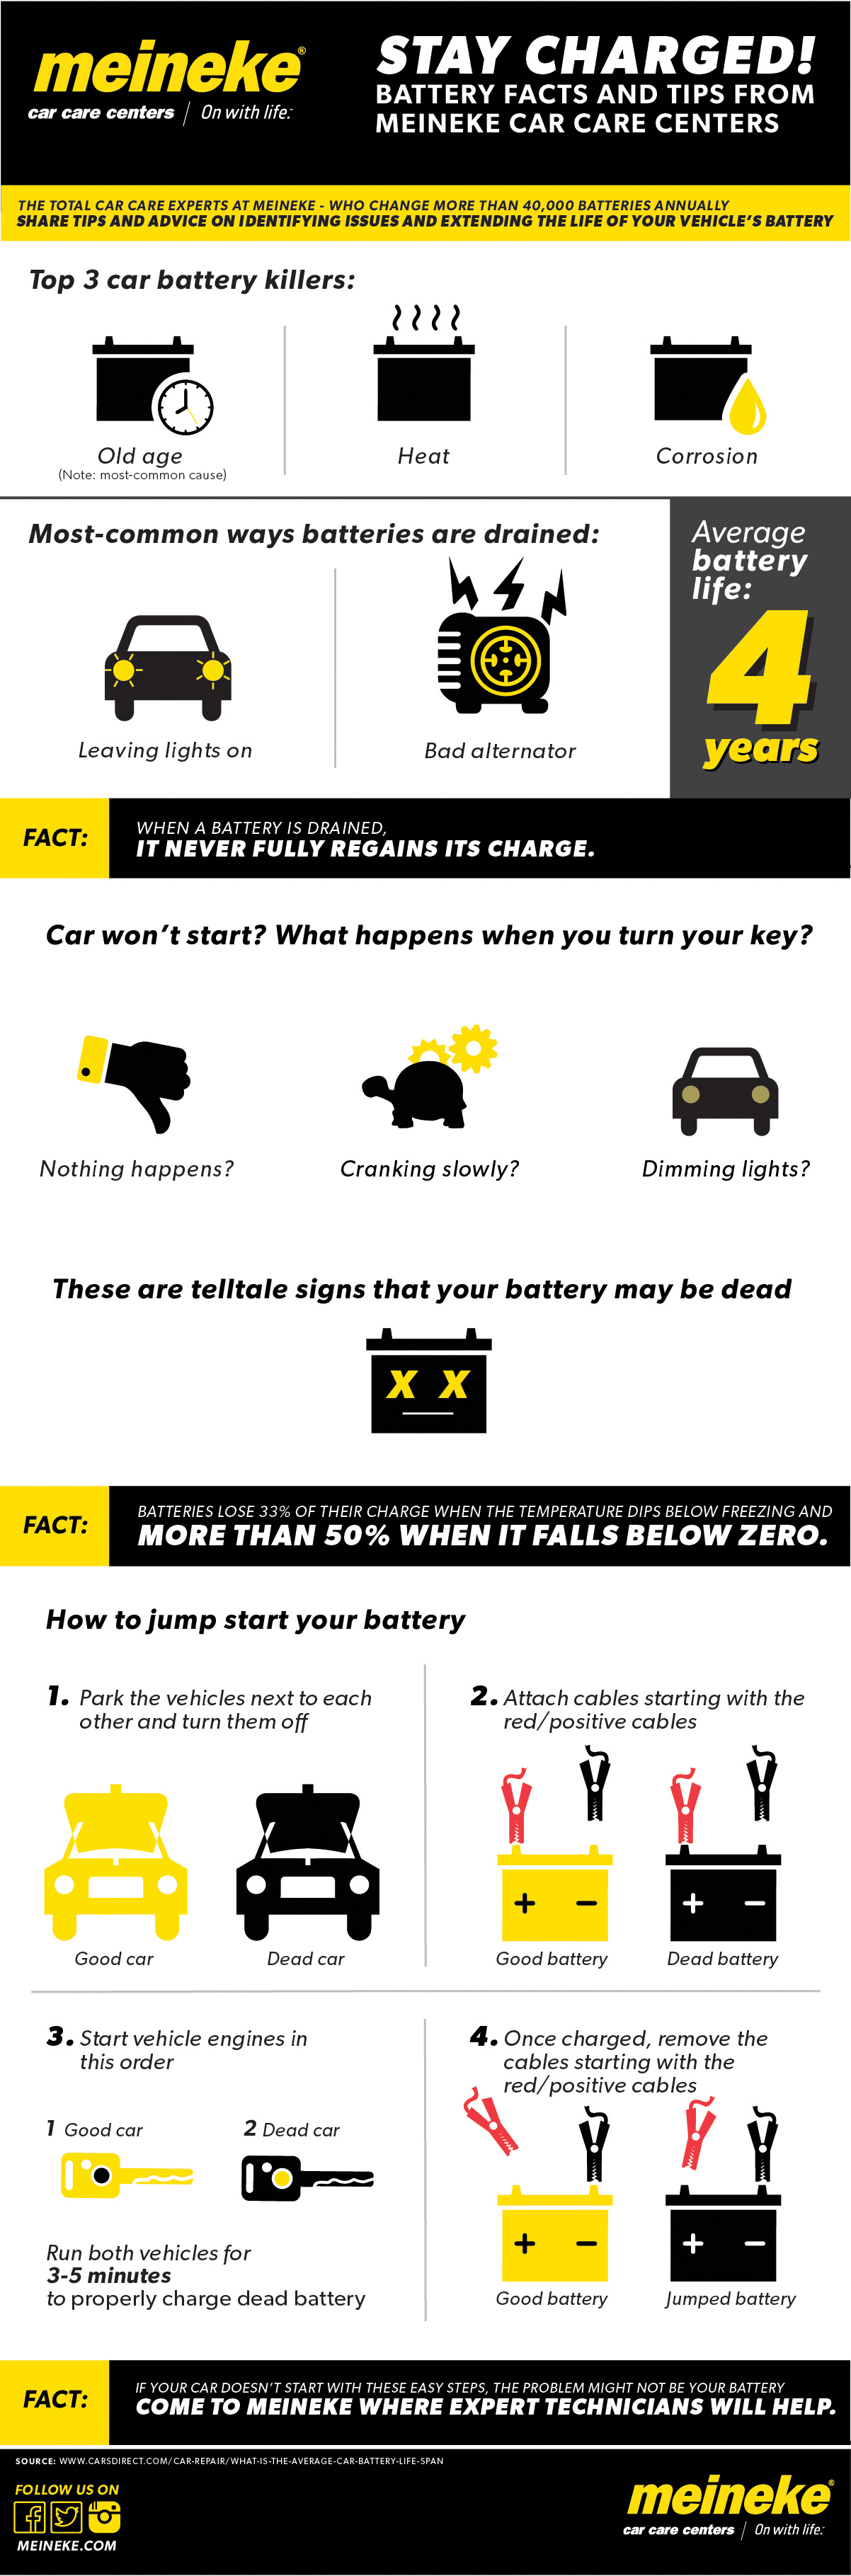 Stay Charged! Tips and facts from Meineke